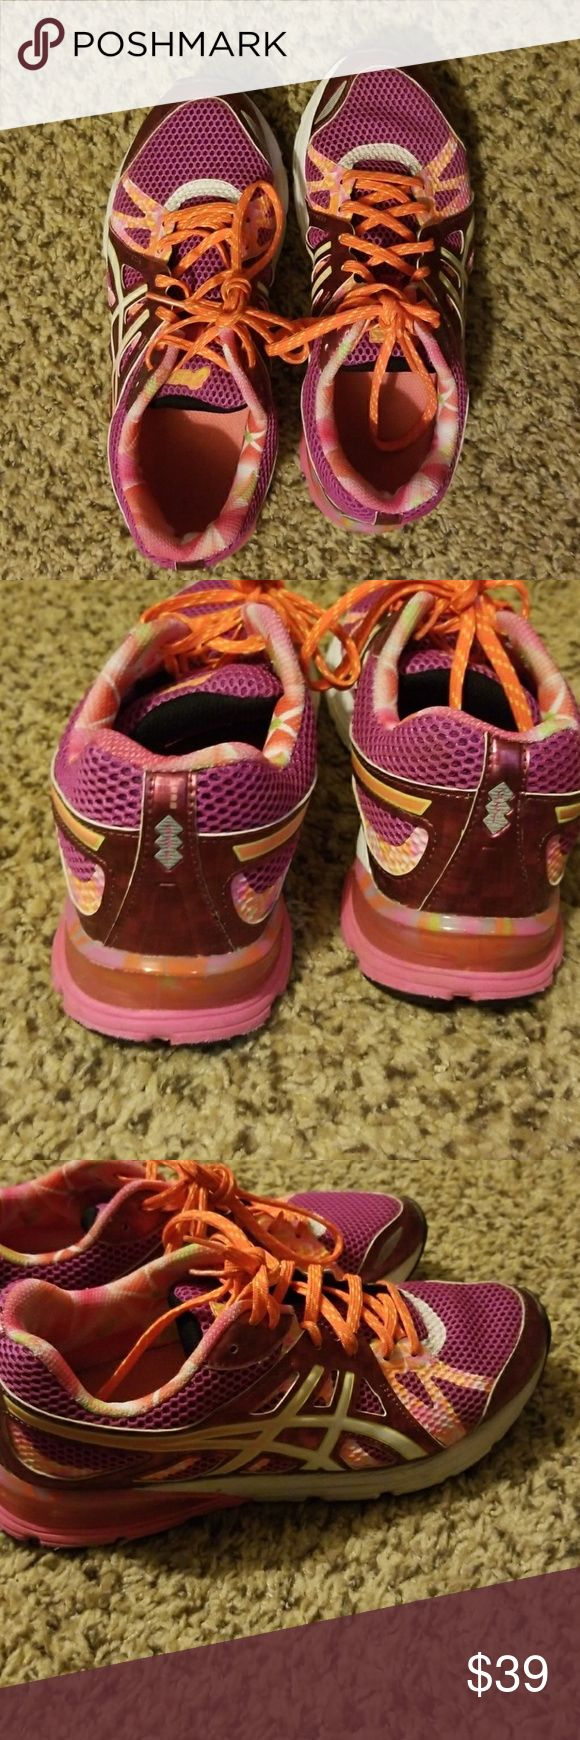 Asics gel shoes Hot pink with orange laces and detailing. Exellent condition as you can tell from the pictures. Cleaned and sanitized, only worn a few times. Feel free to ask for more pics. Make an offer! 😻 Asics Shoes Athletic Shoes